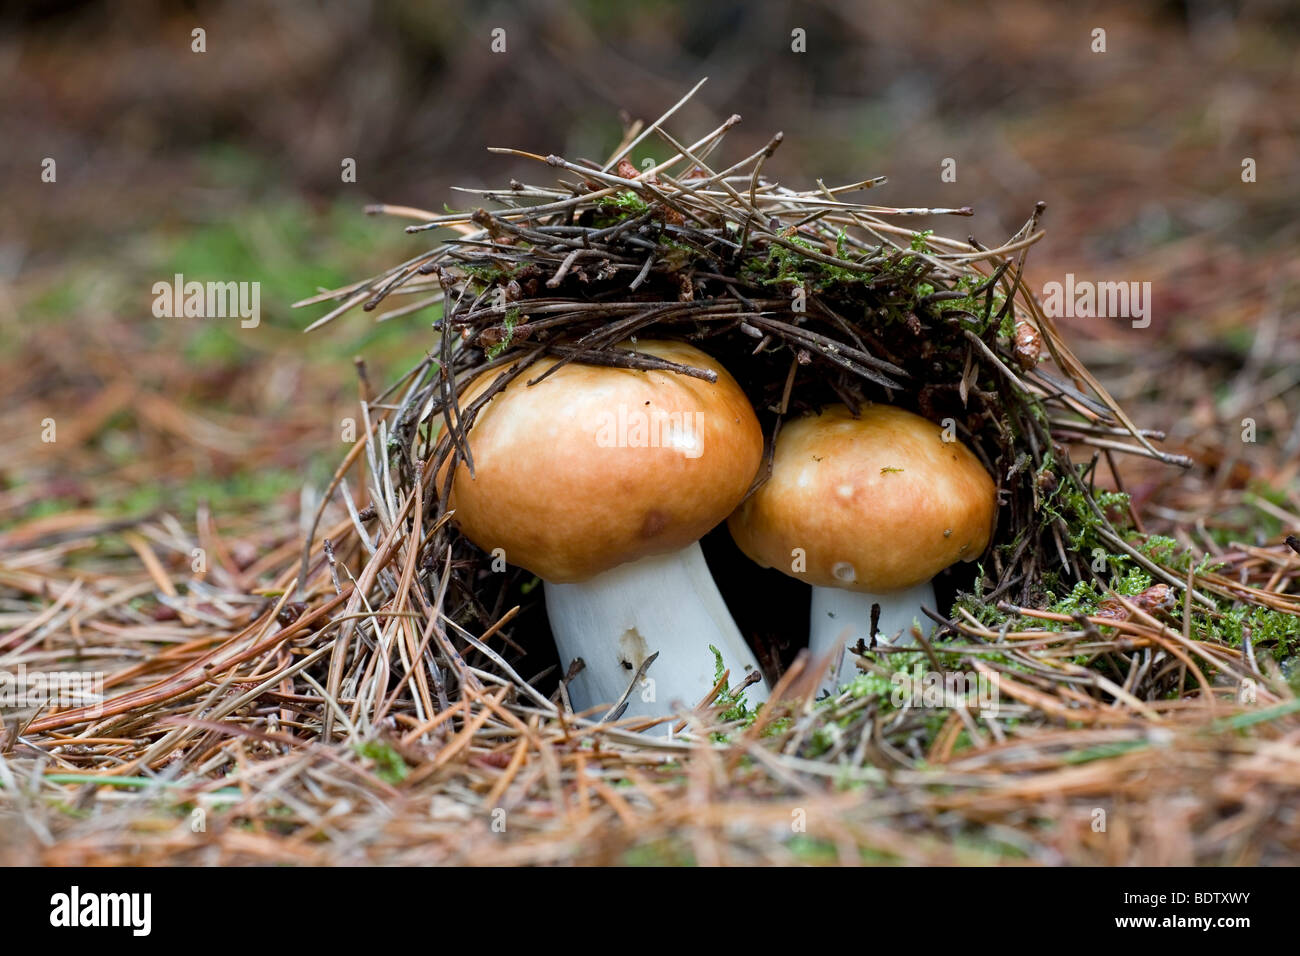 Orangeroter Graustieltaeubling / Red-capped Russula / Russula decolorans Stock Photo